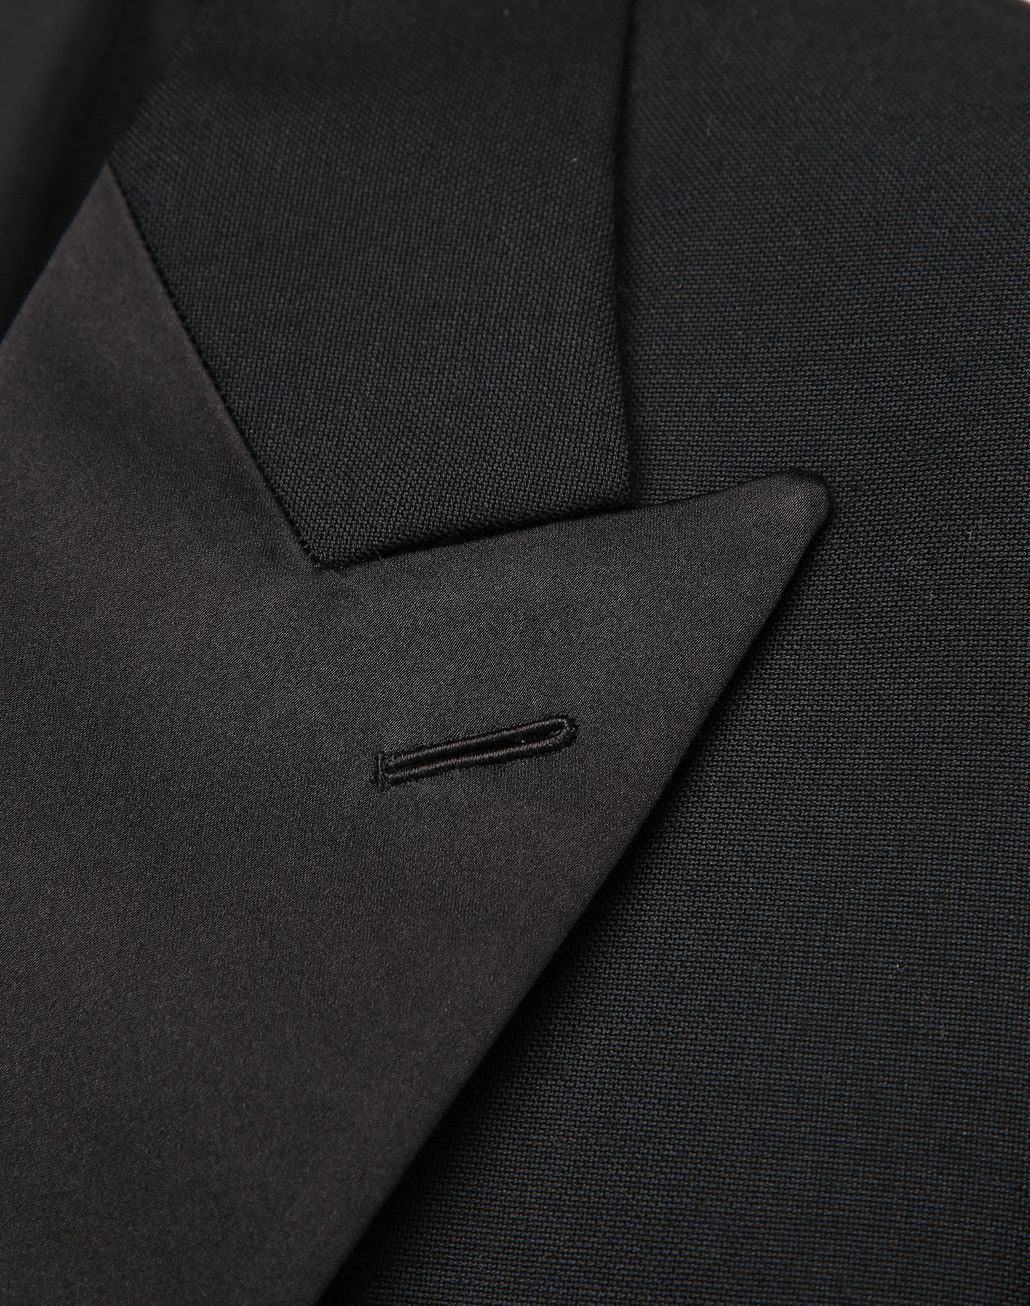 BRIONI Black Parioli Tuxedo Suit  Suits & Jackets Man e